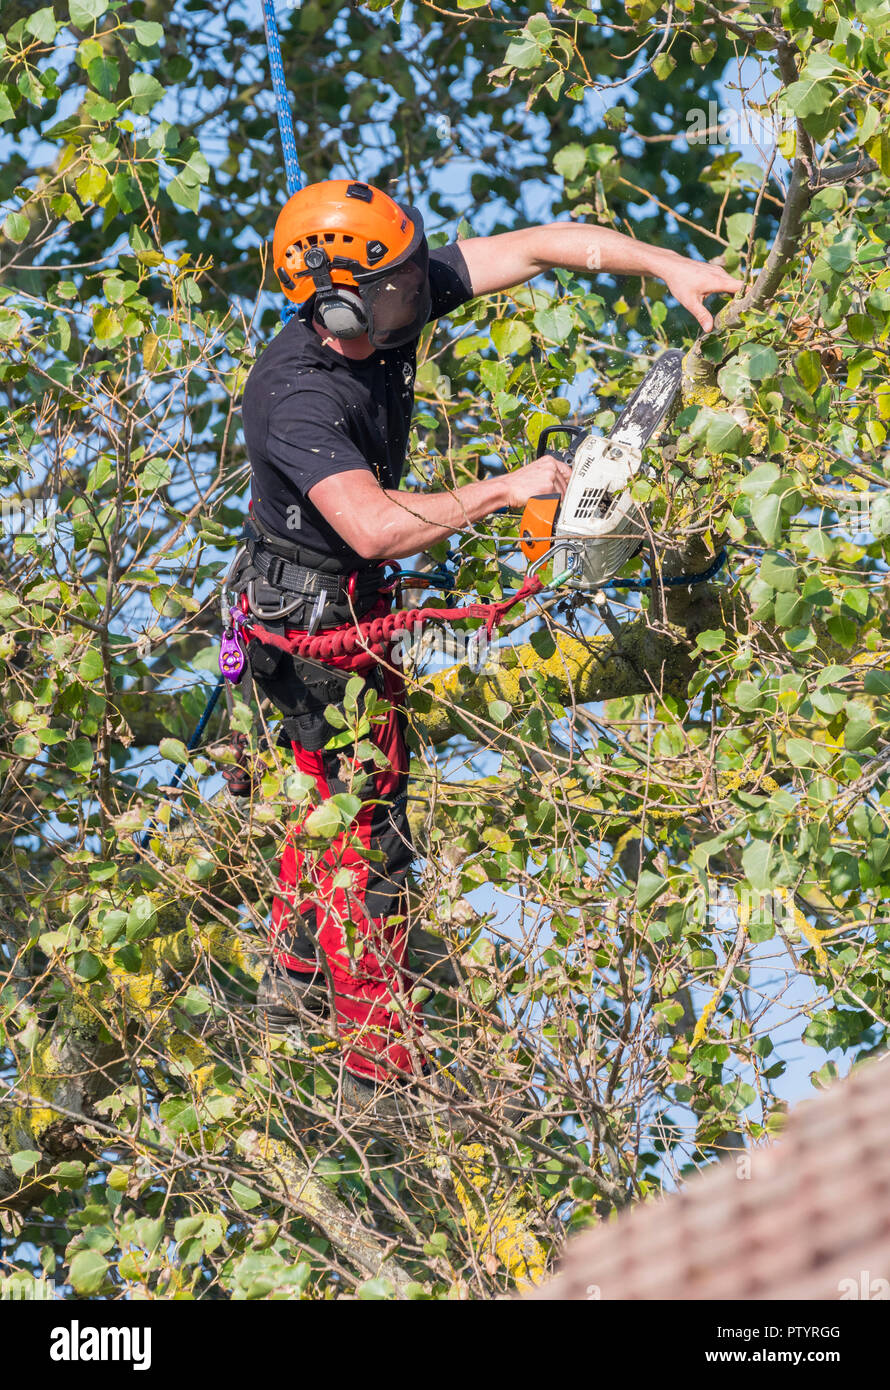 Tree feller up a tree in Autumn, secured by a rope, using a saw to trim a tree, in the UK. Tree surgery. Tree felling. Tree surgeon. Tree surgeon. - Stock Image